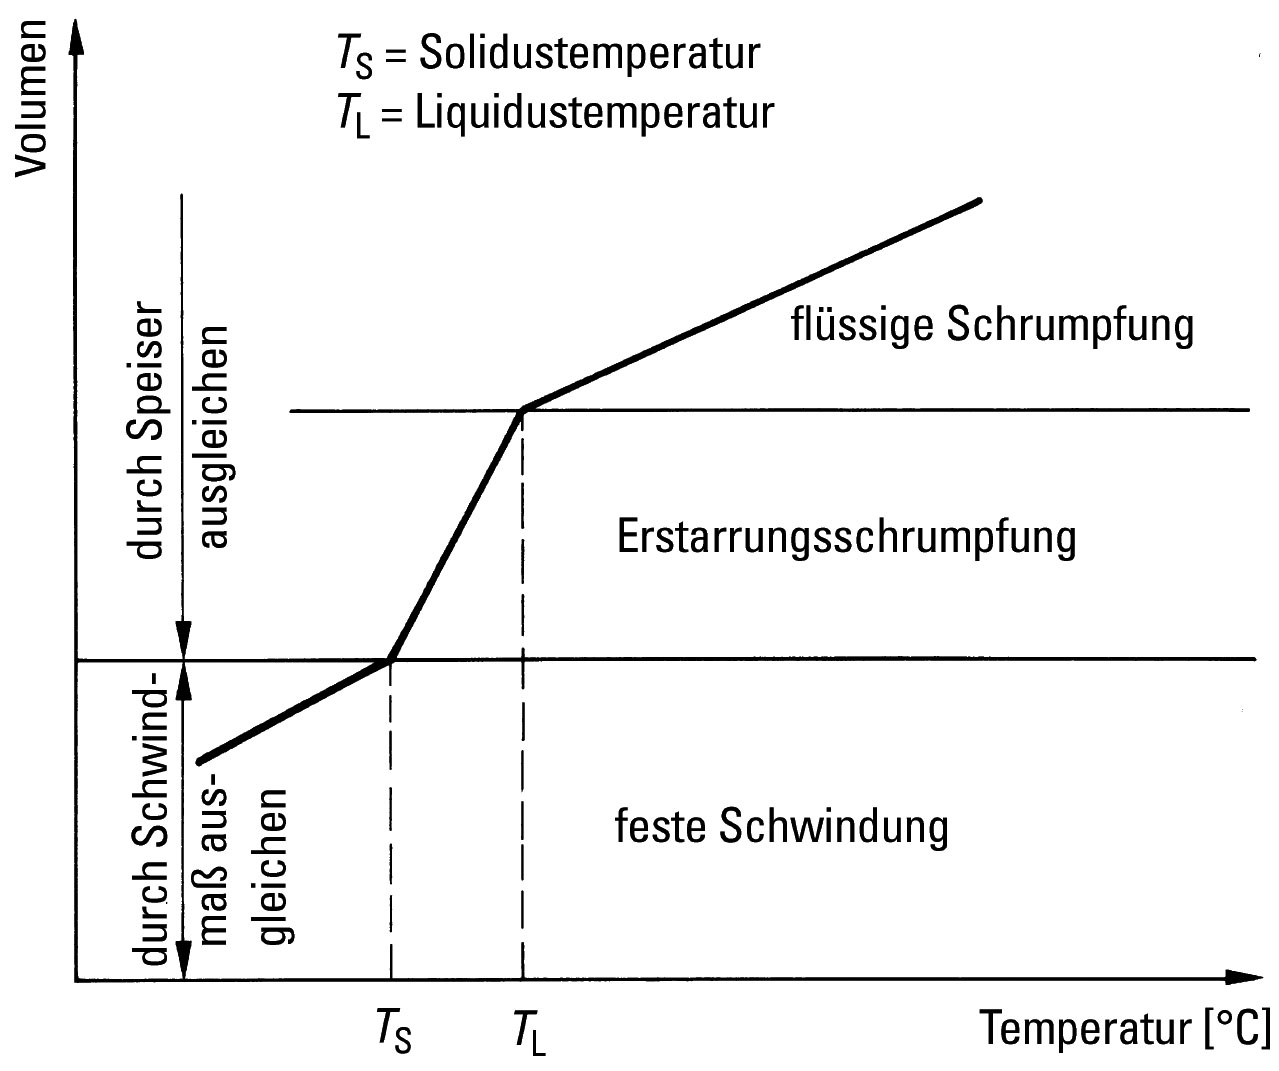 Fig. 1: Temperature-related change in volume